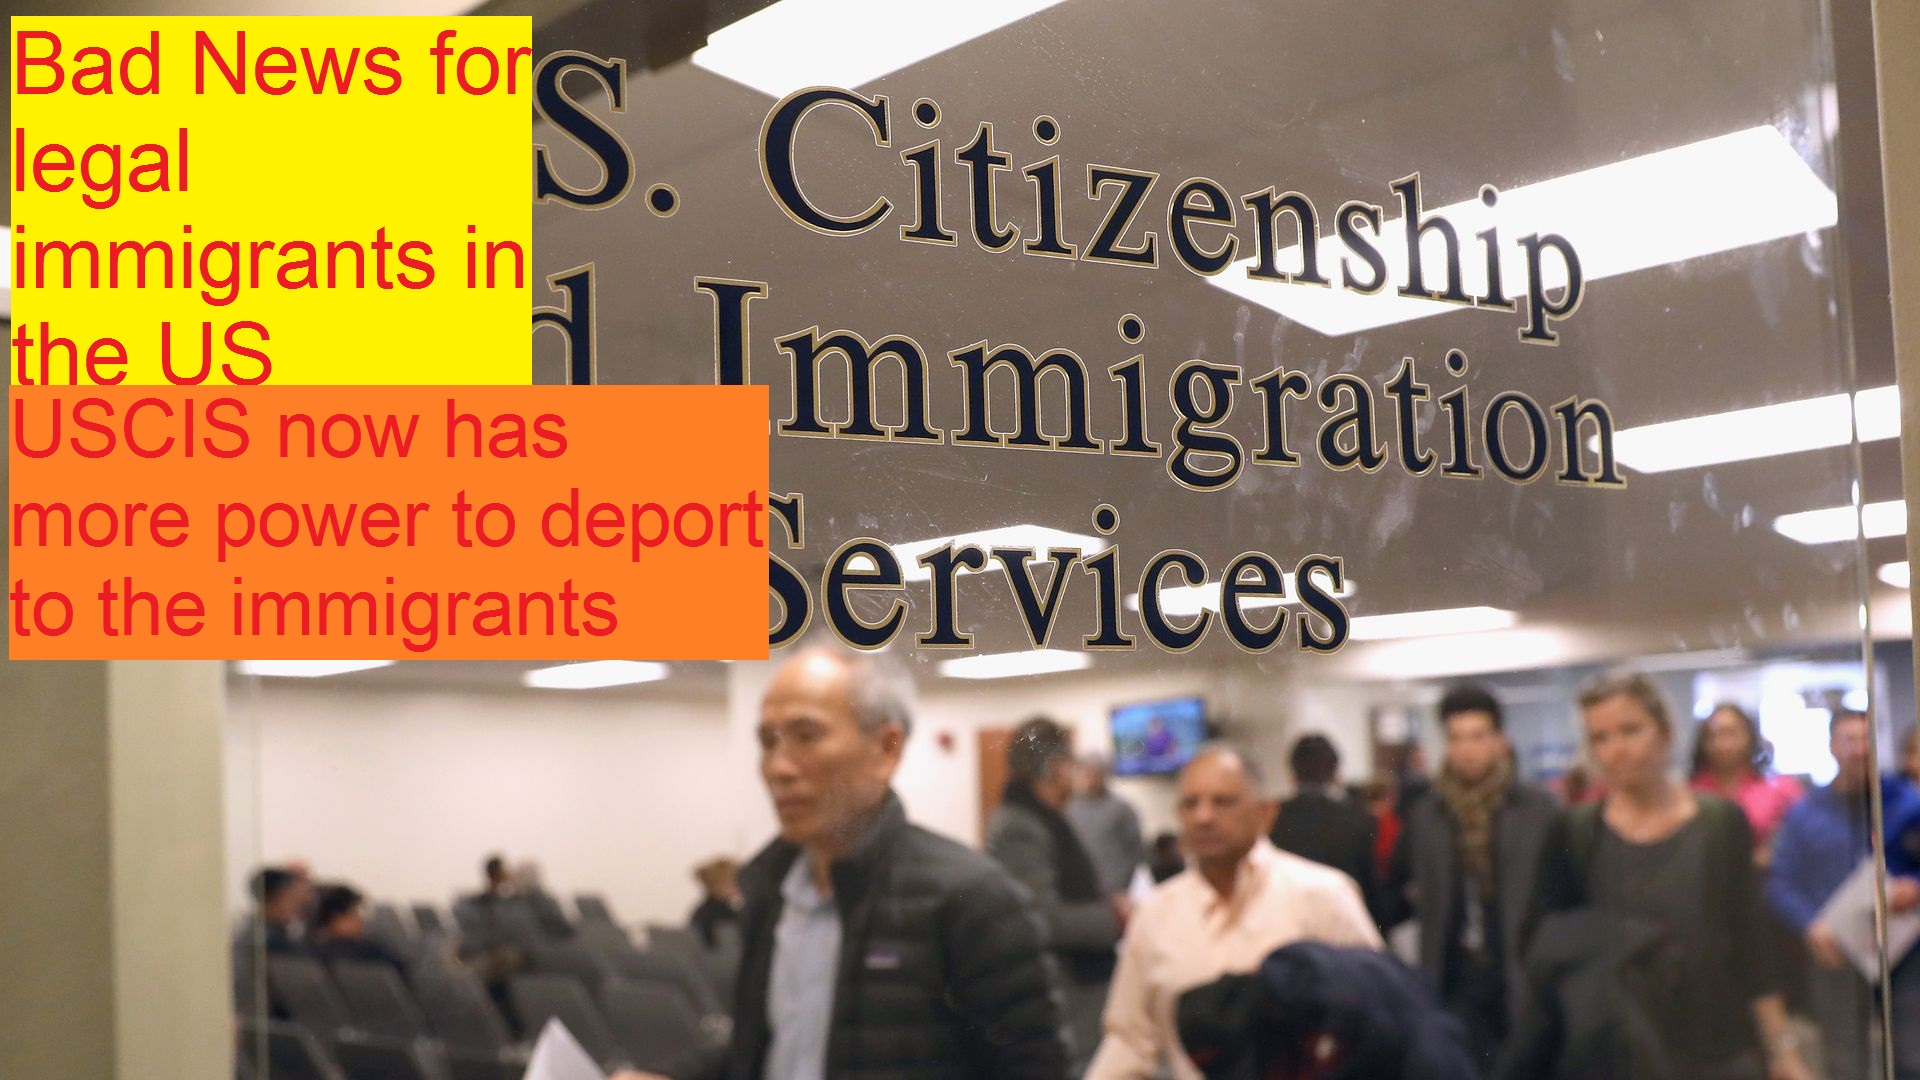 Bad news for legal immigrants- USCIS now has more power to deport to the immigrants